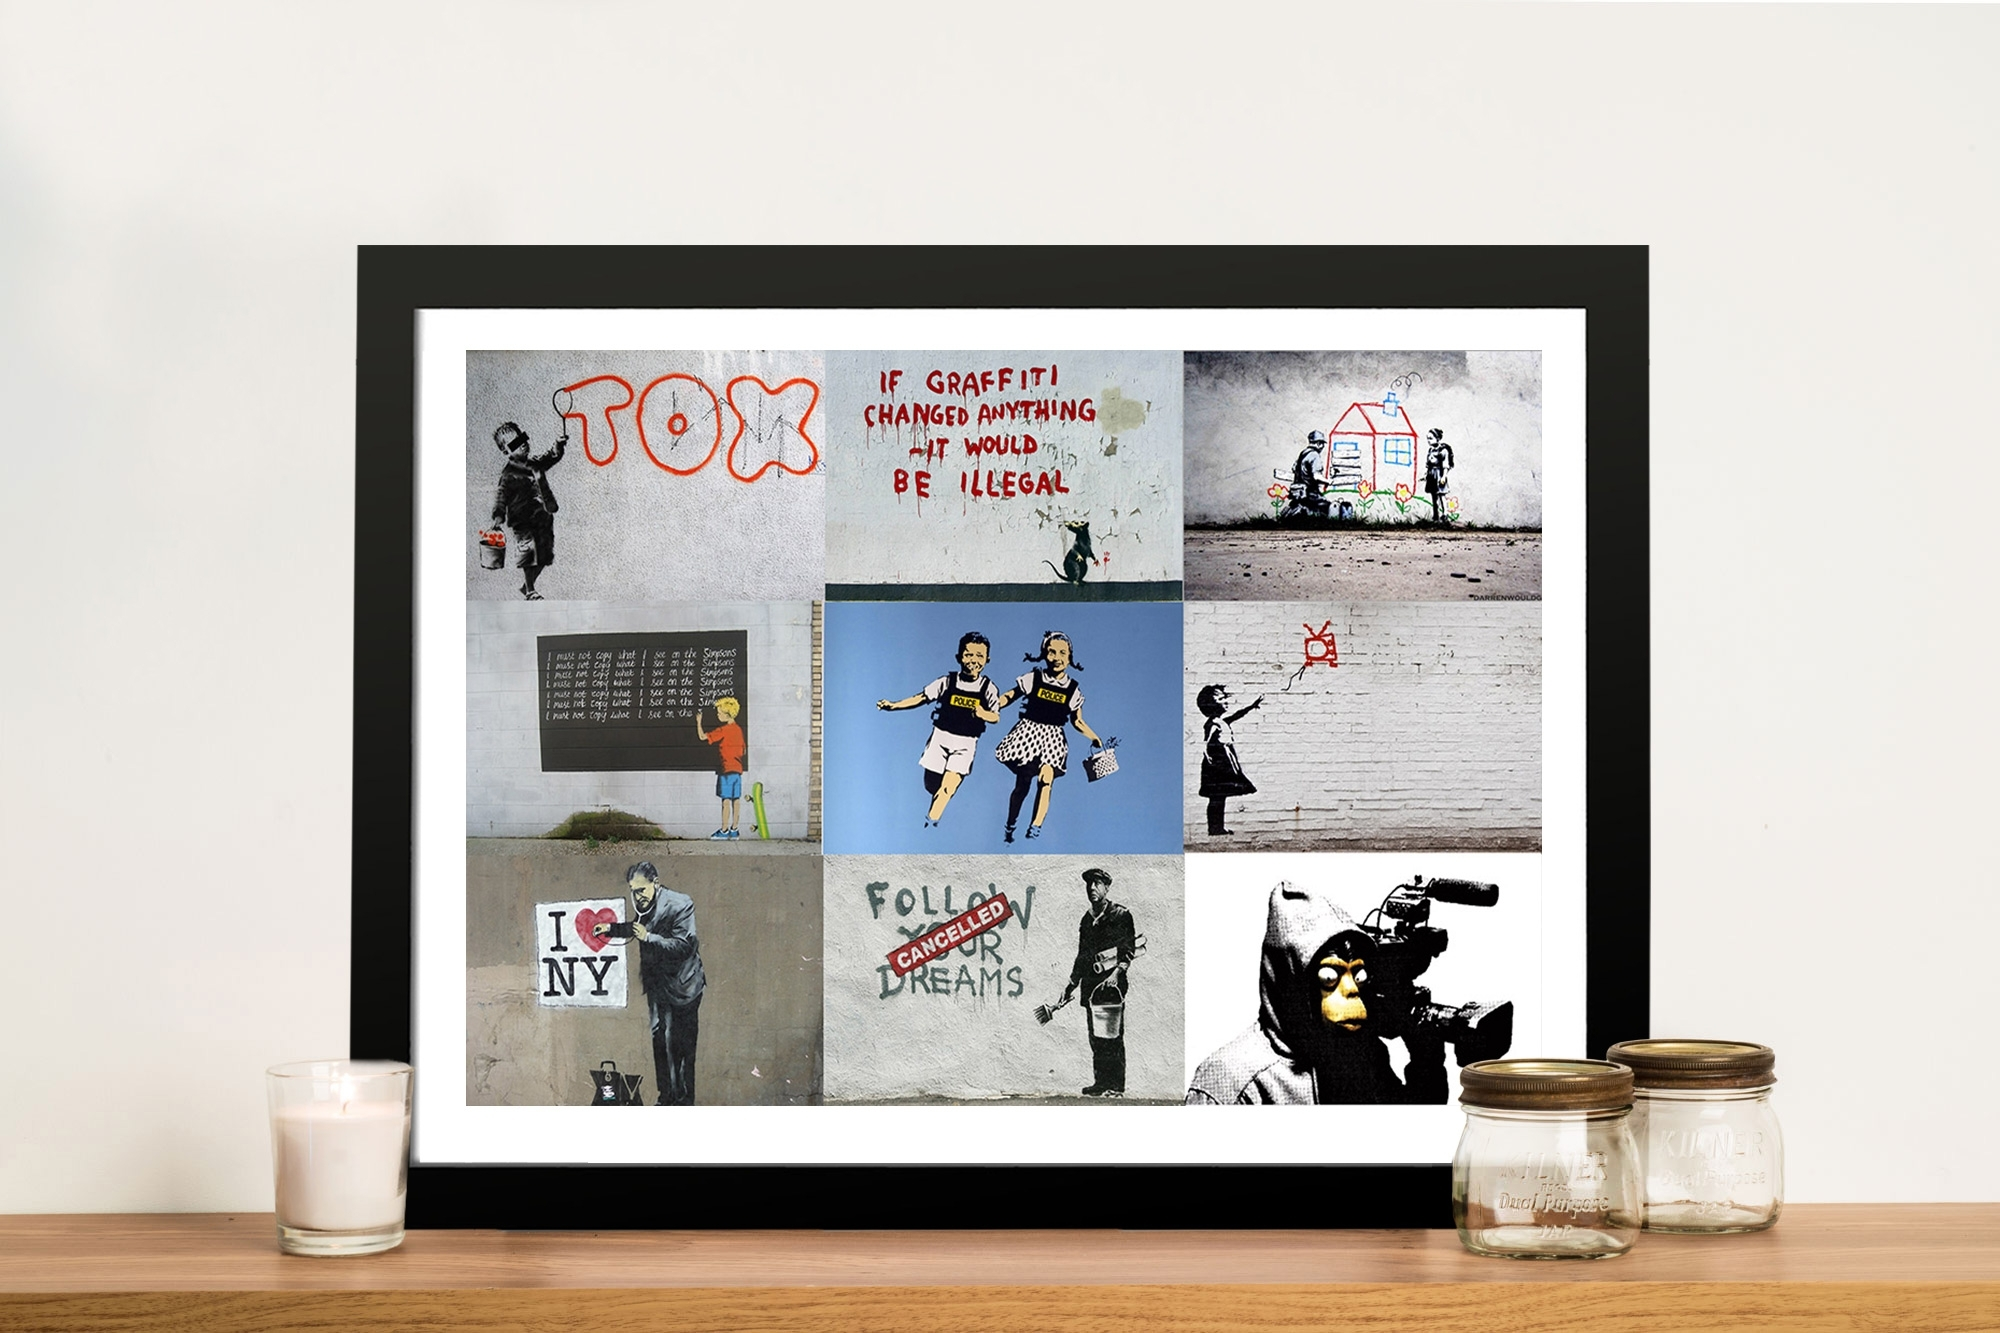 Banksy Montage Pictures Art Framed Wall Art Perth Au Regarding Current Framed Wall Art (View 5 of 15)